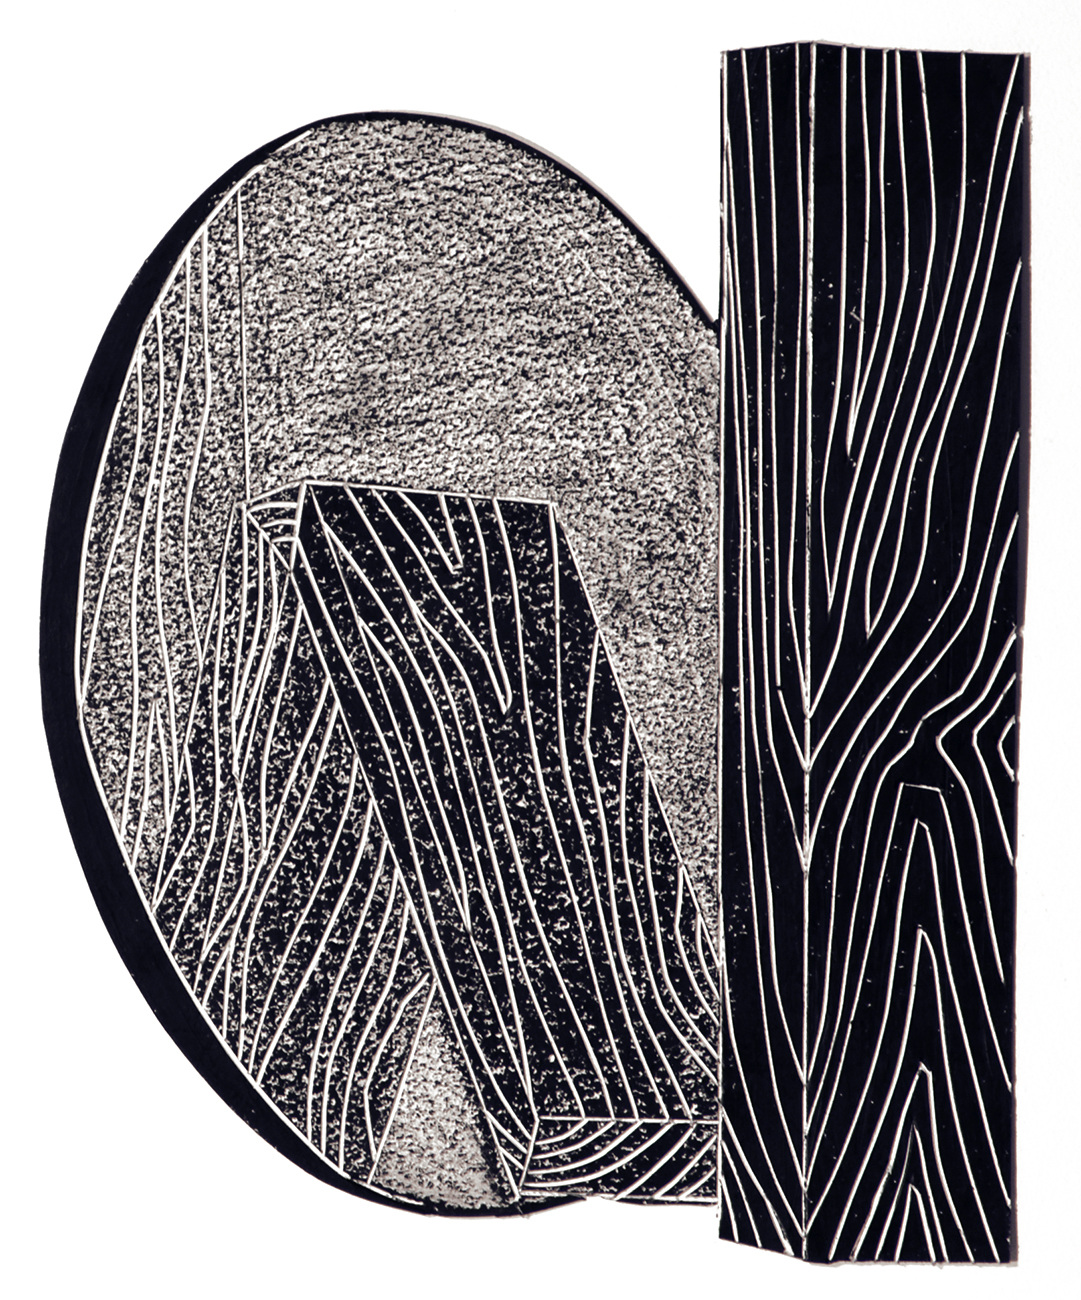 black drawings 2014-2015 2x4s and Oval Mirror